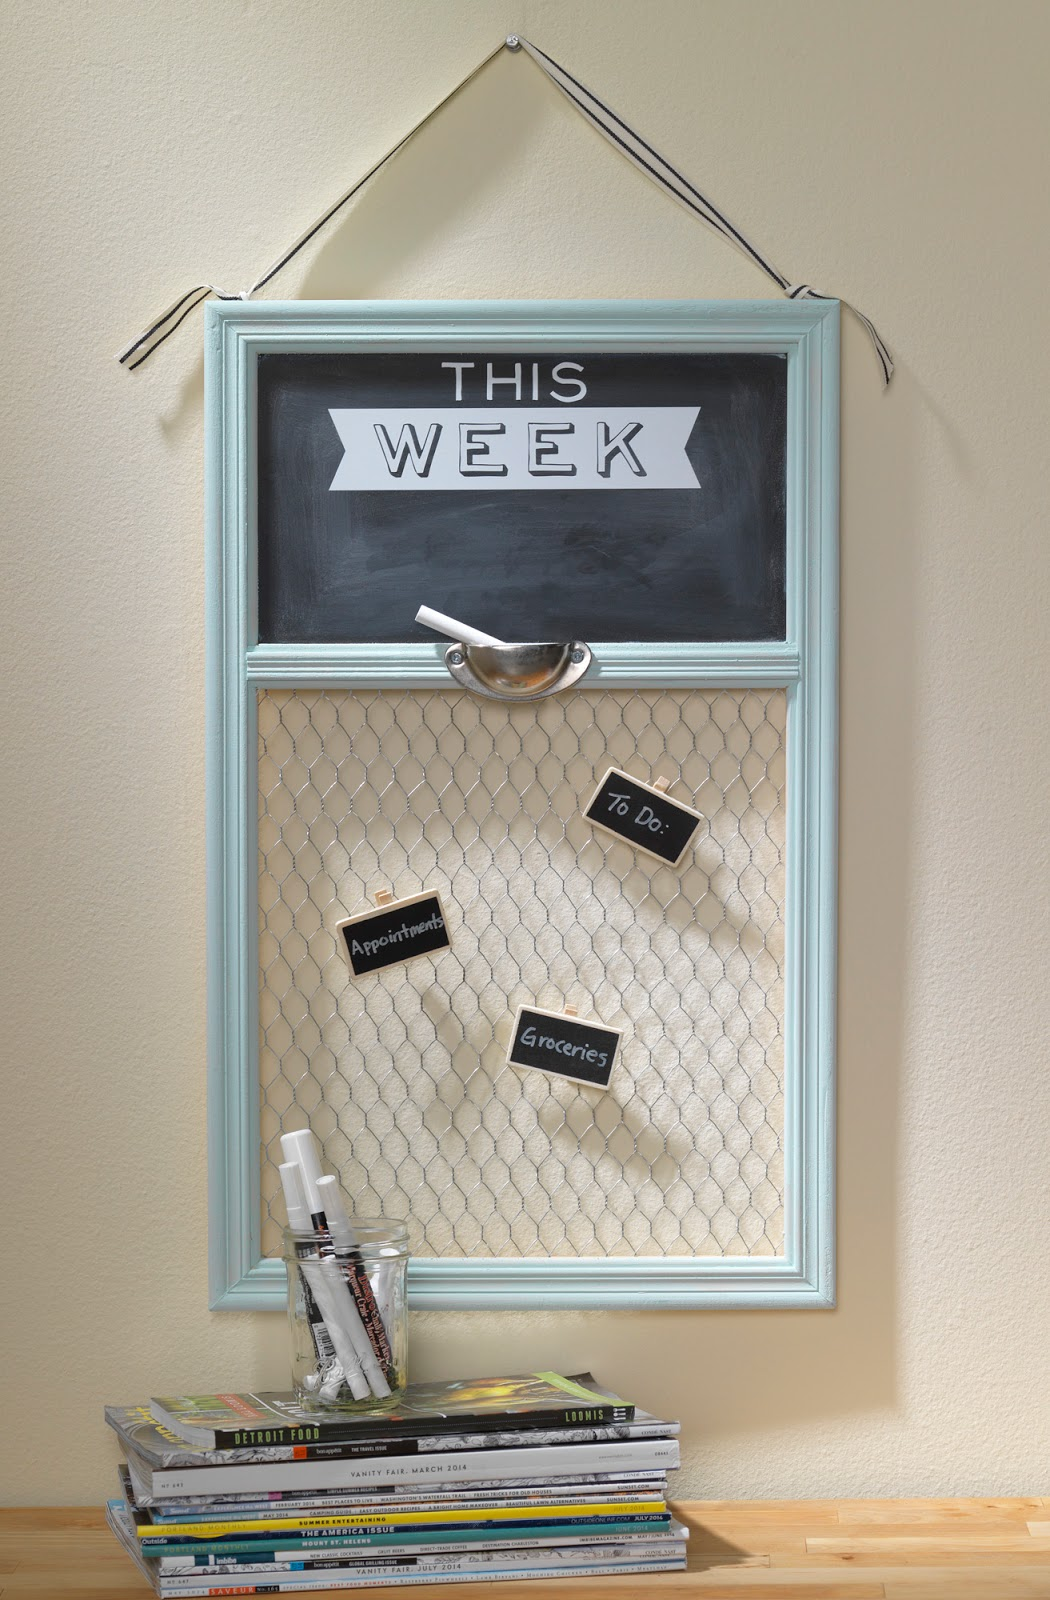 This Week Chalkboard Message Board @craftsavvy #craftwarehouse #diy #organization